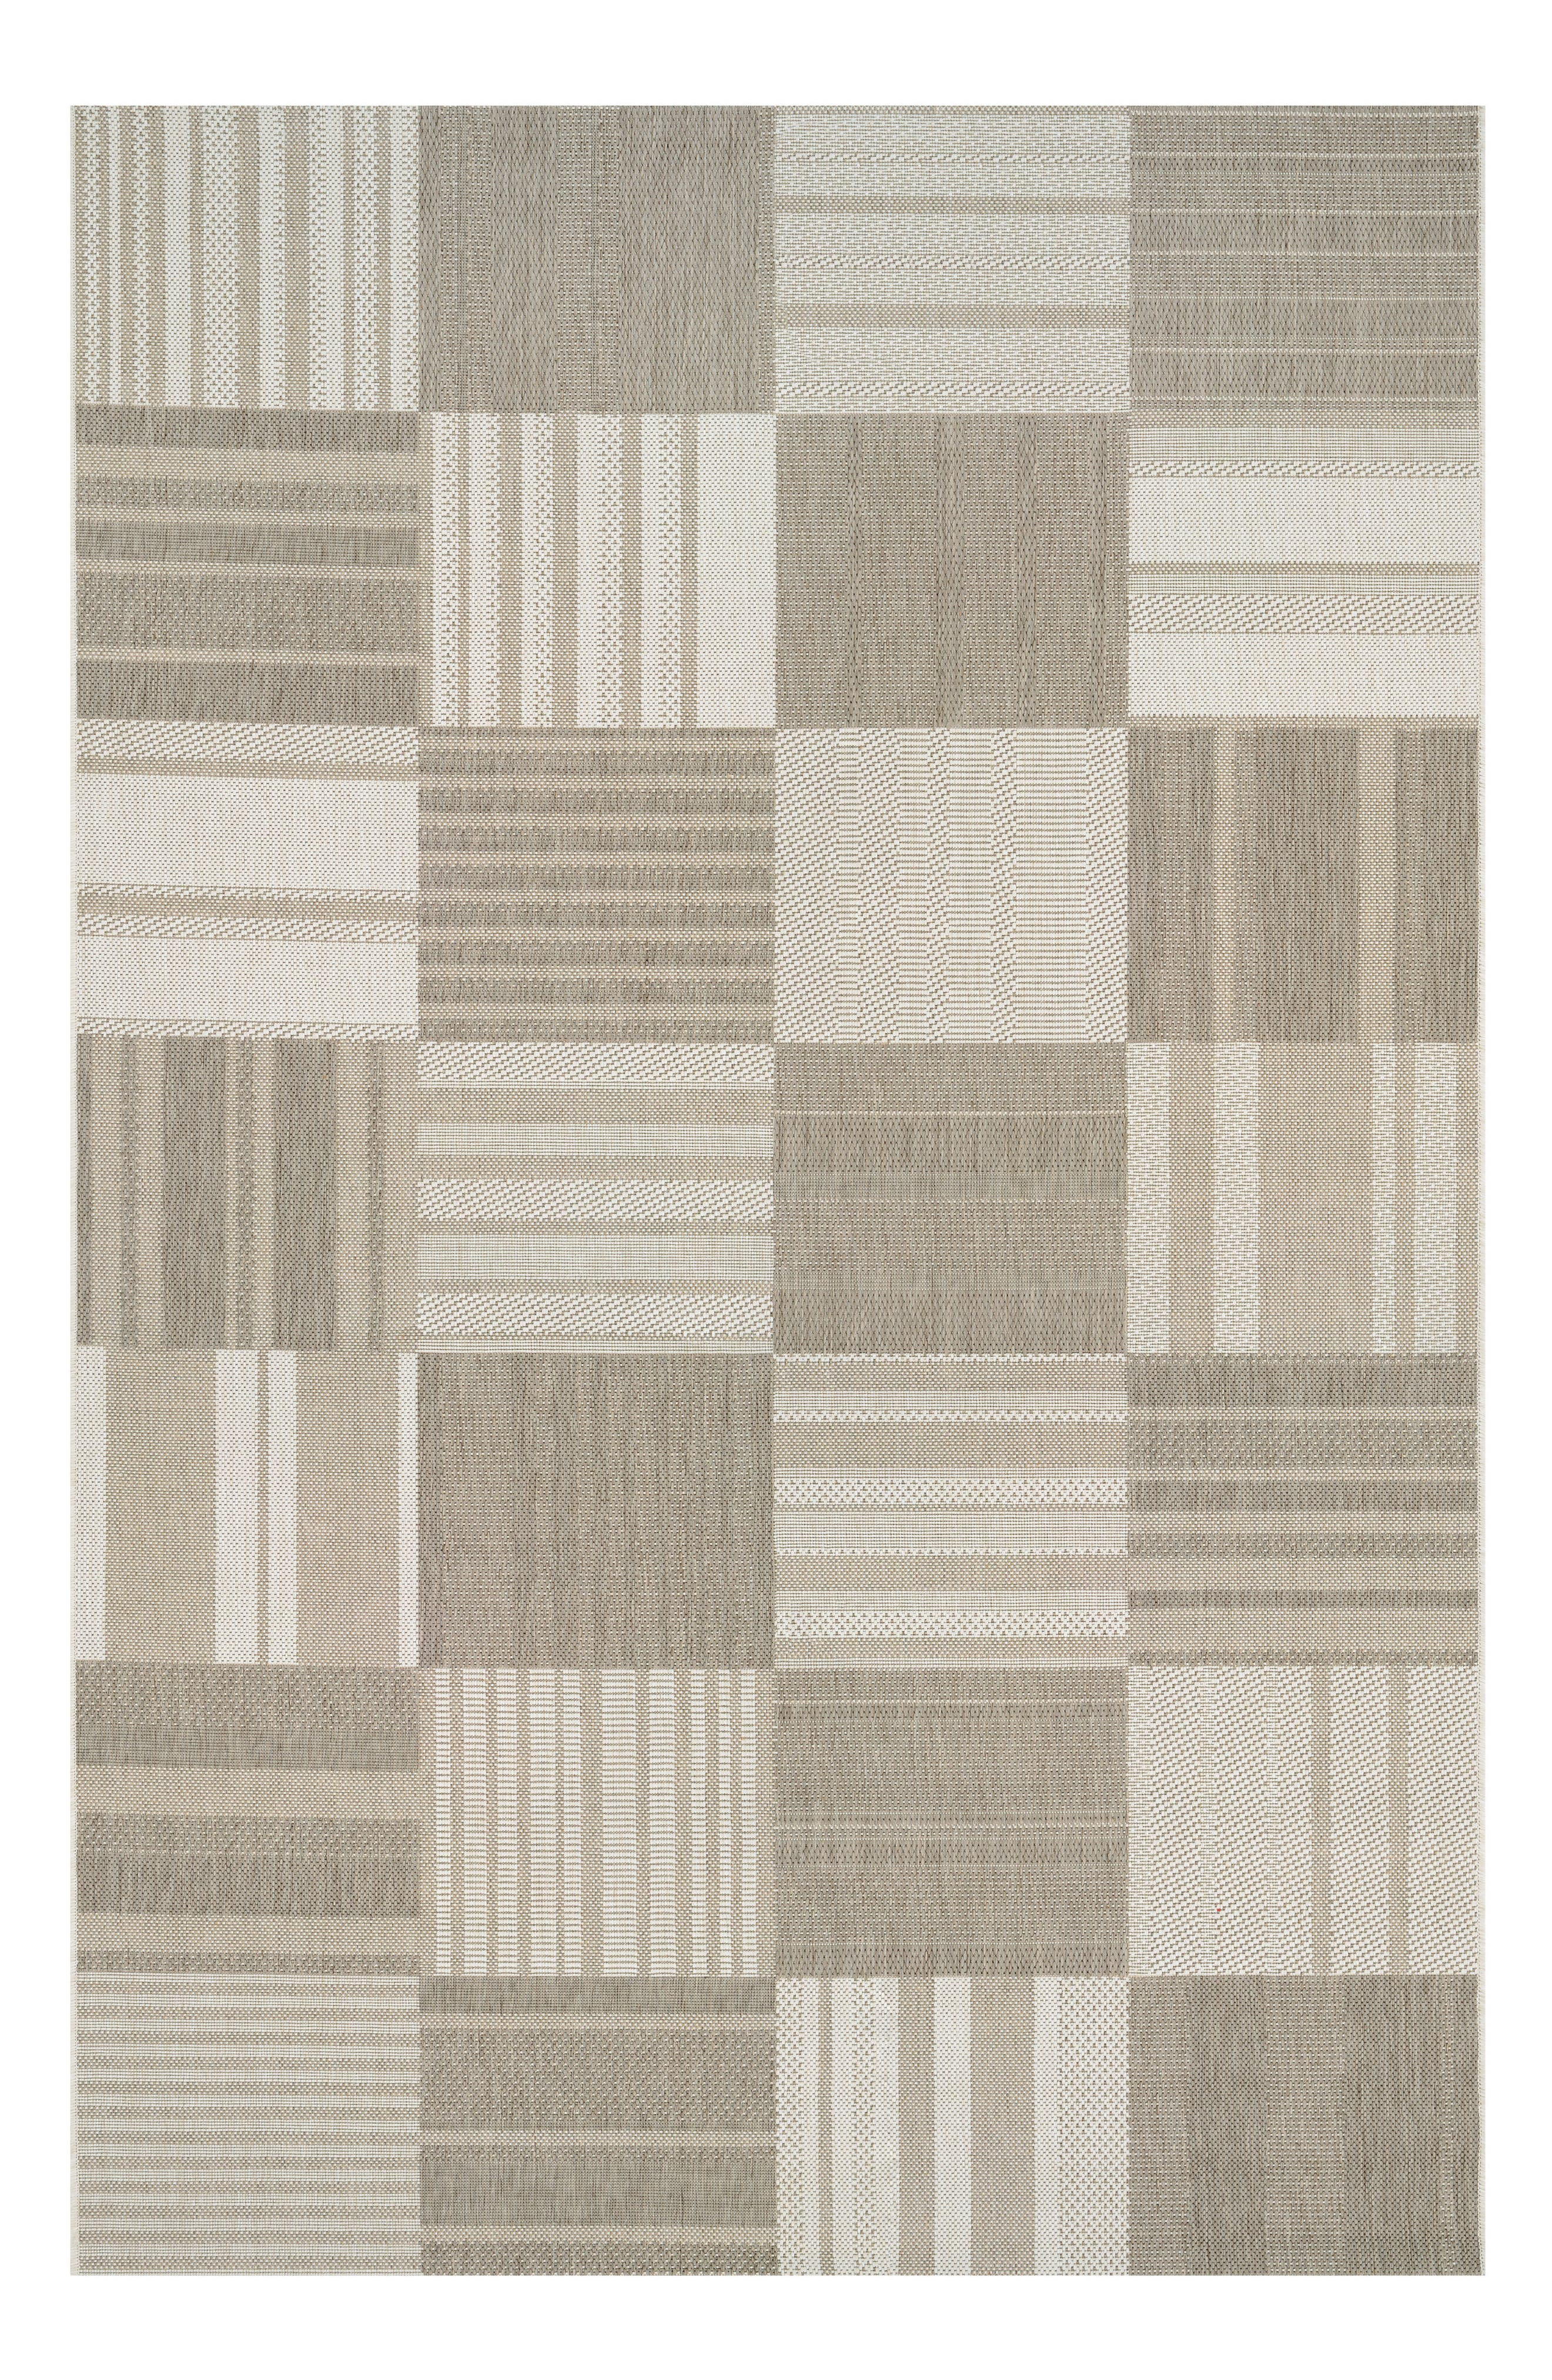 A classic checkerboard pattern enhances the country-chic charm of a versatile rug power-loomed in fade-resistant polypropylene, making it great for high-traffic areas both inside and outside. Style Name: Couristan Patchwork Indoor/outdoor Rug. Style Number: 5363358. Available in stores.